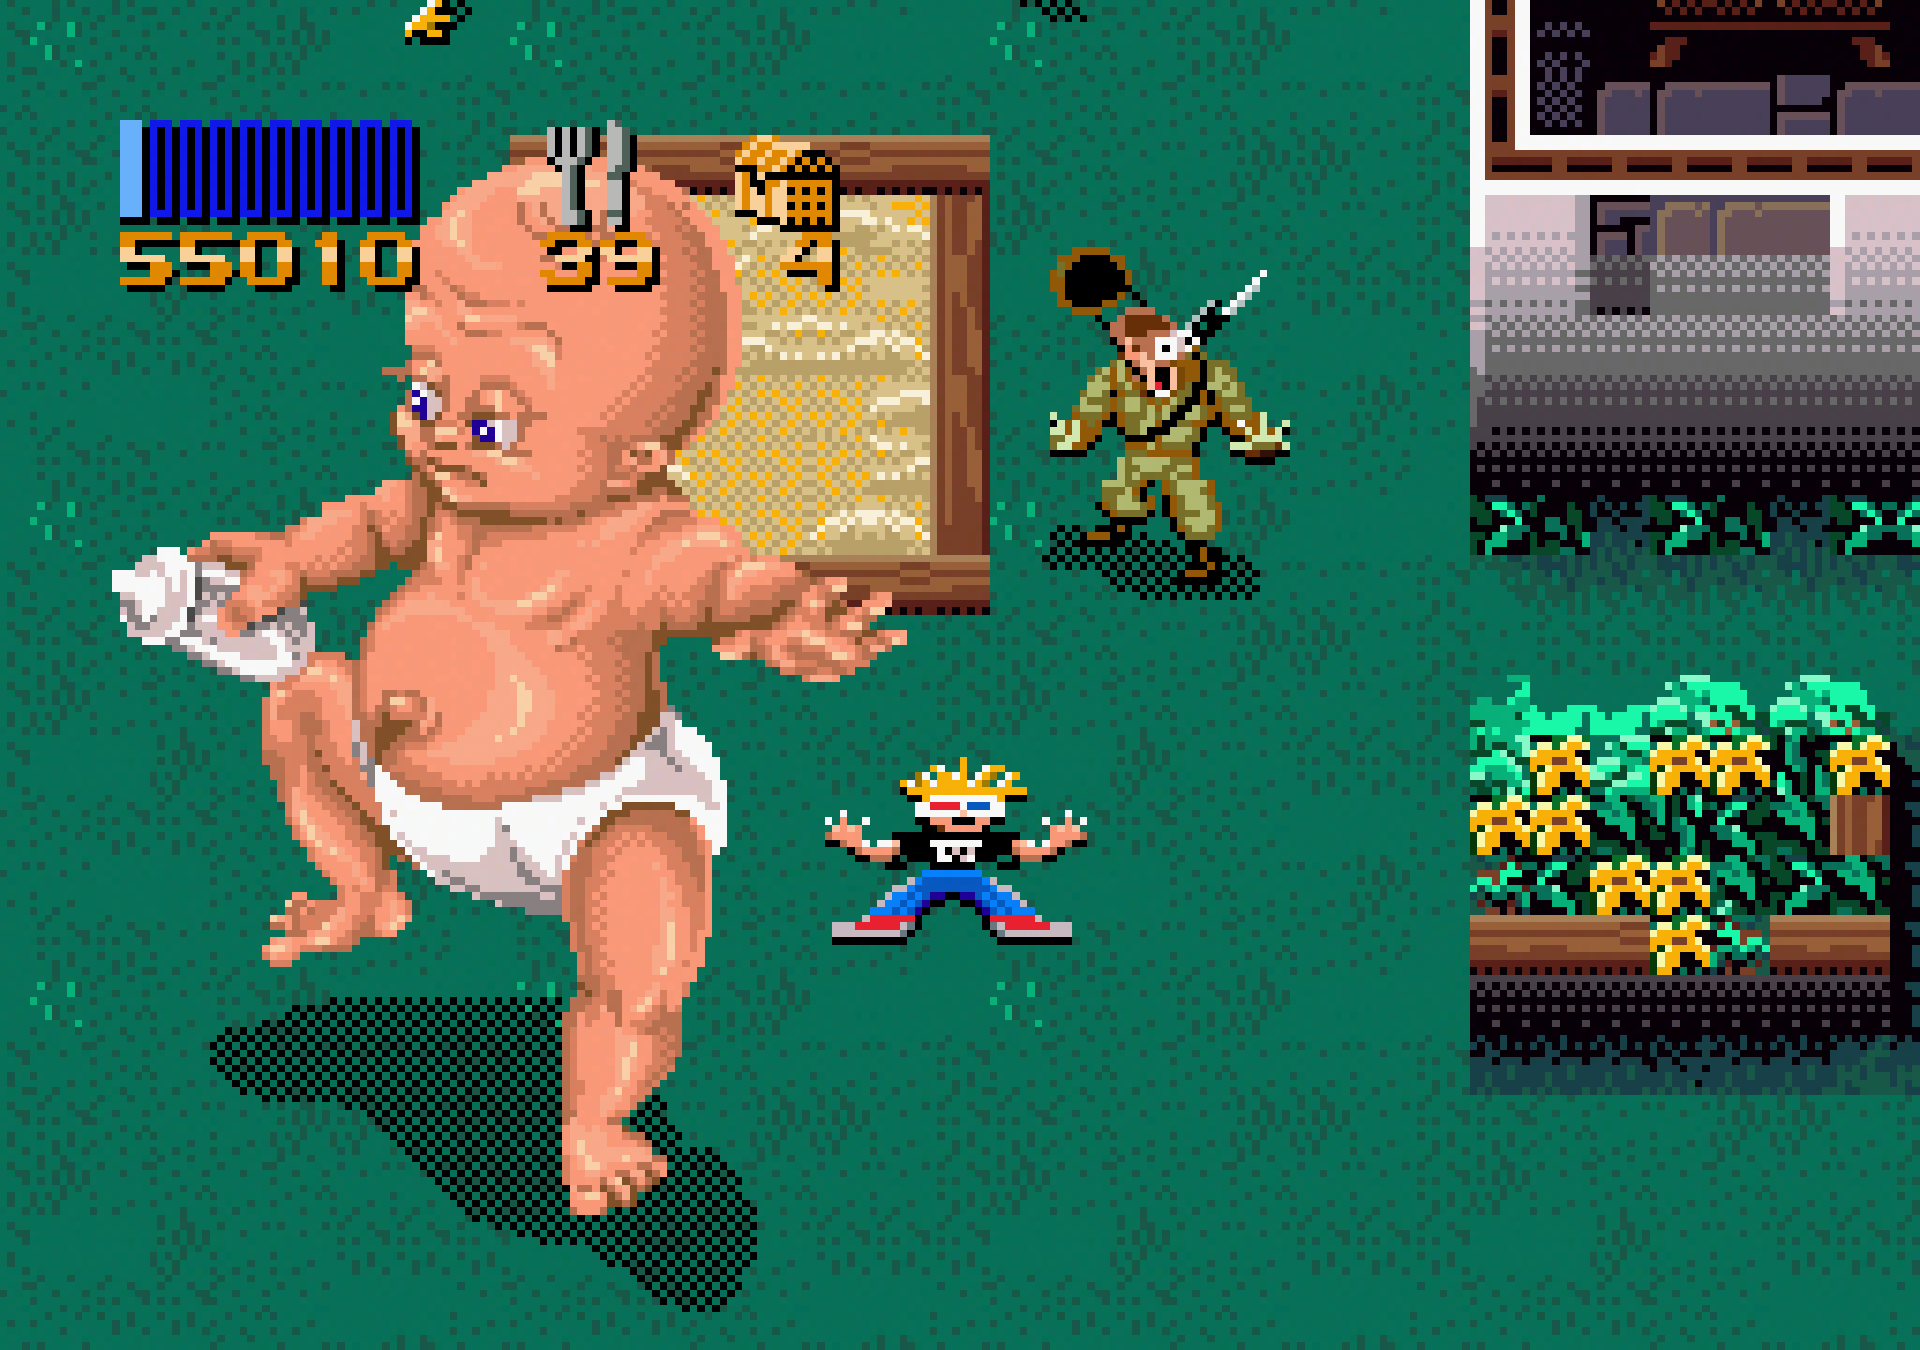 The giant baby in Zombies Ate My Neighbors